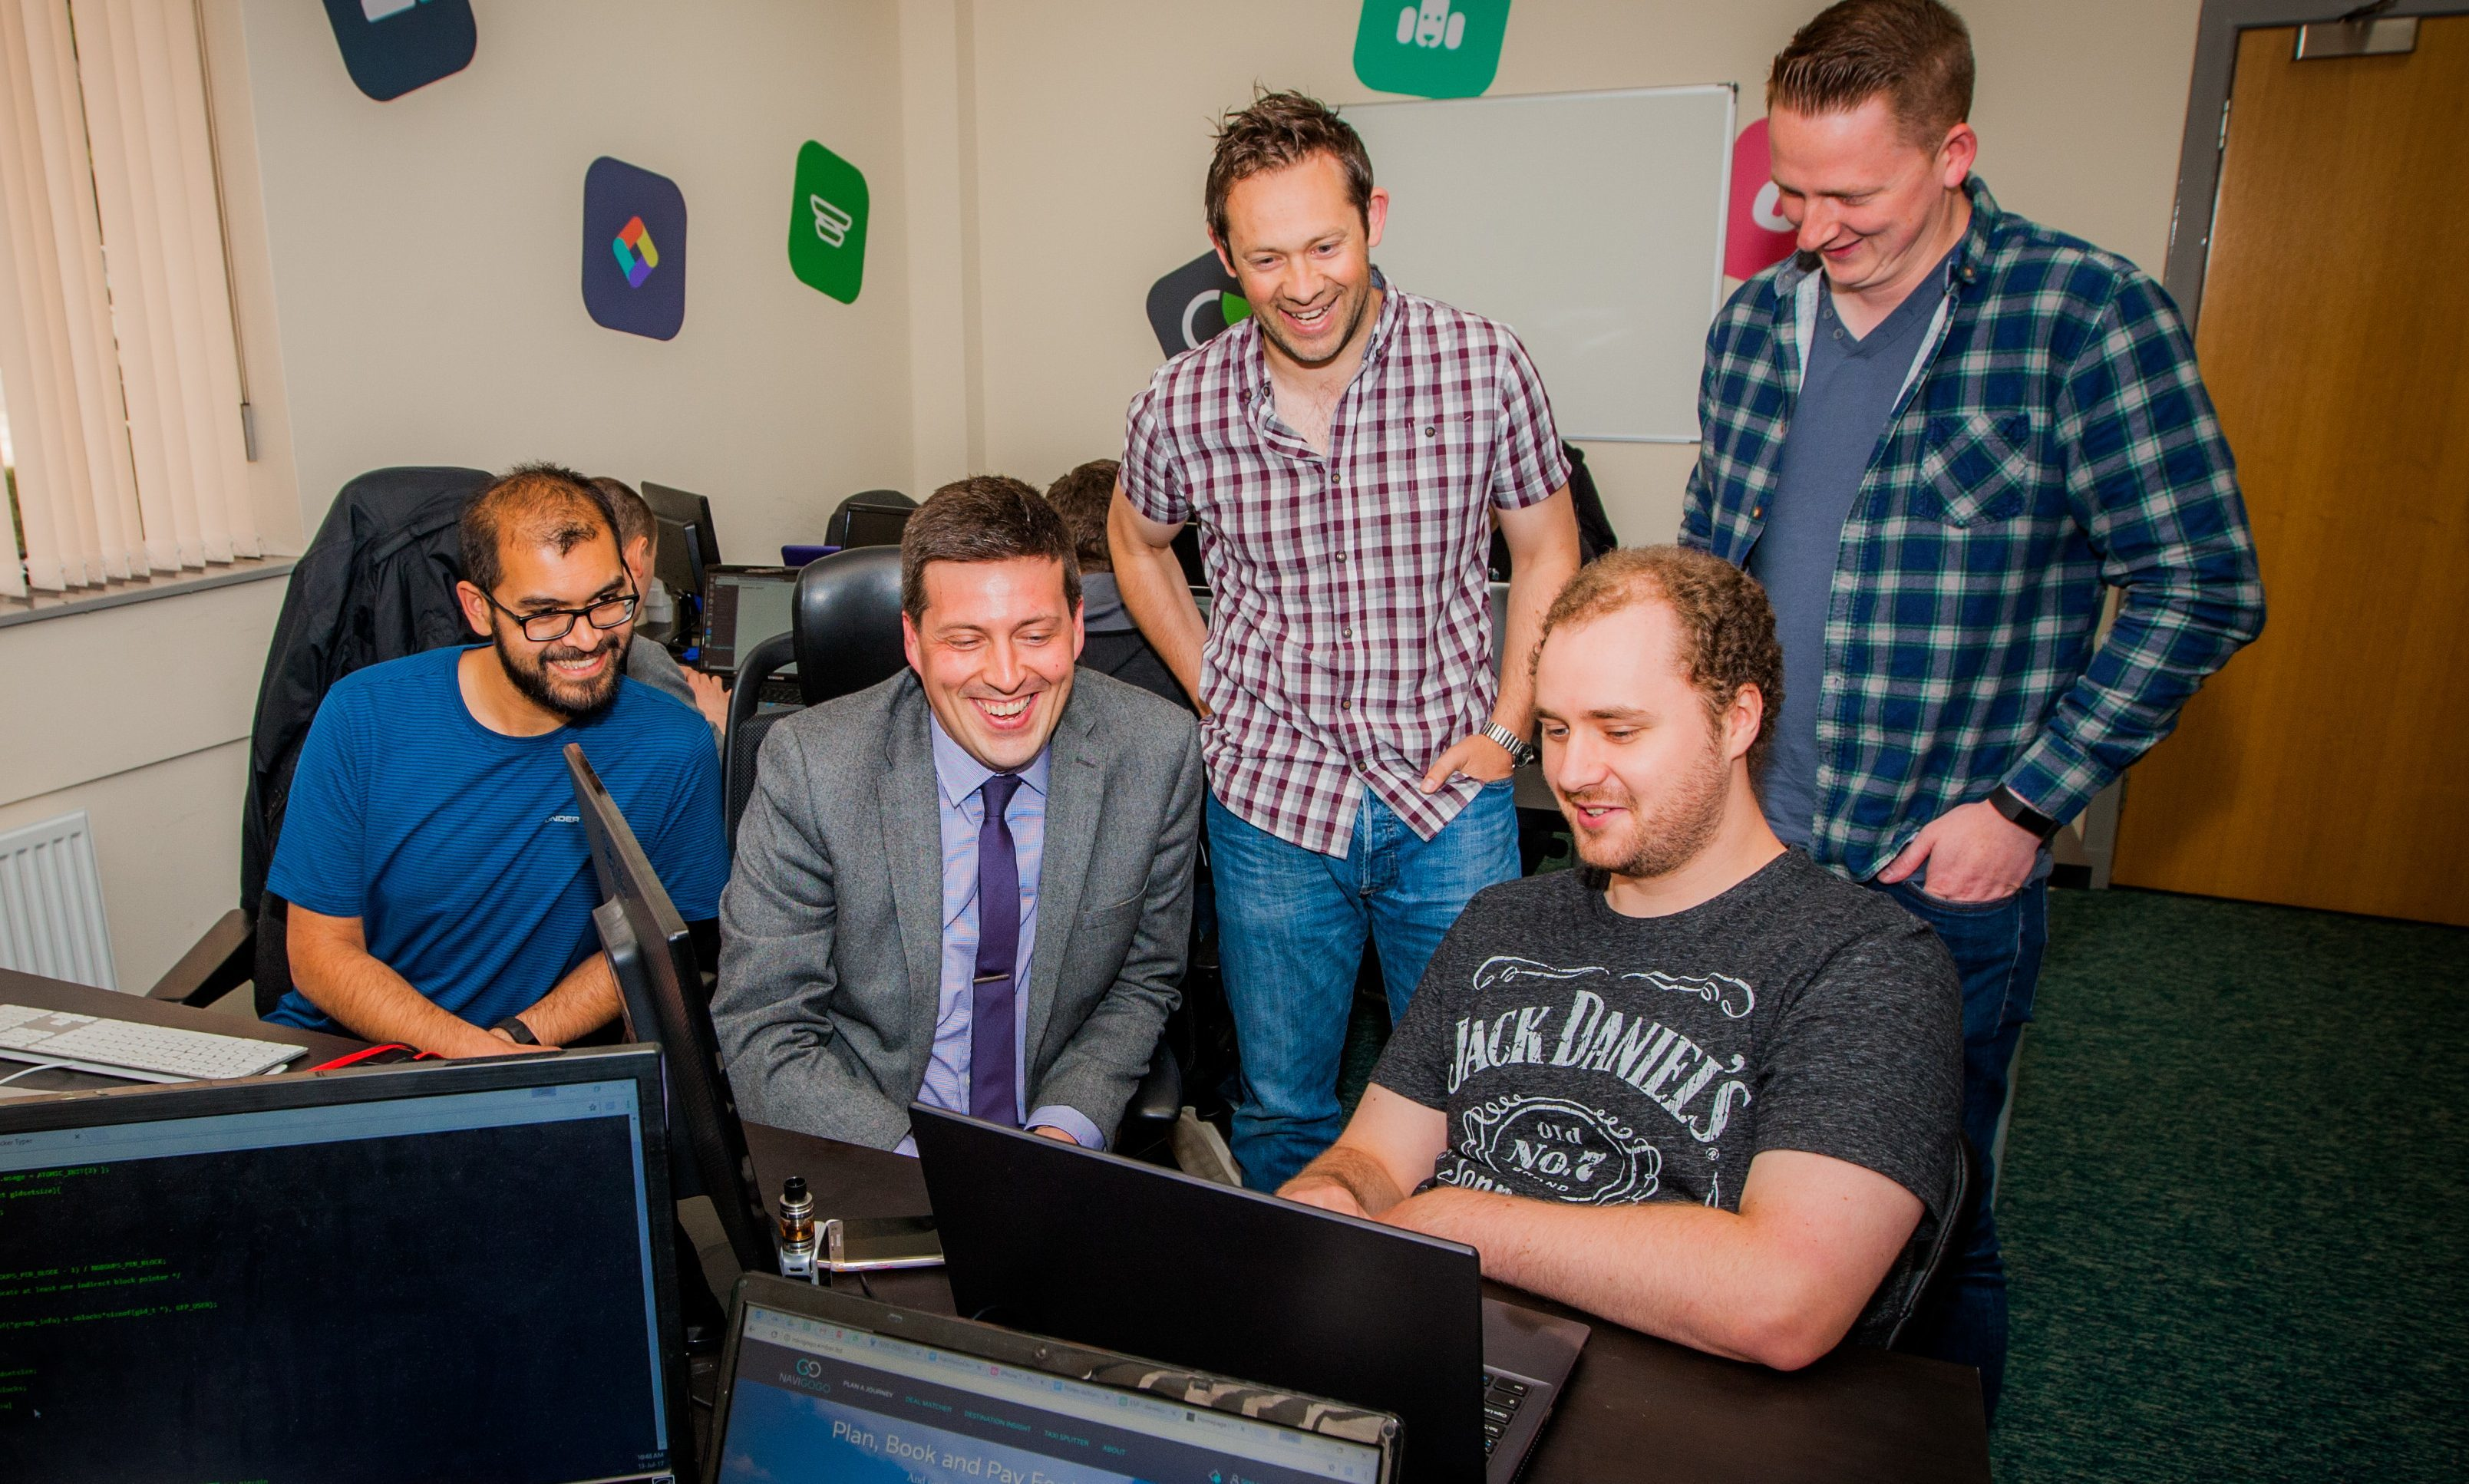 Employability and training minister Jamie Hepburn views work of the Developing the Young Workforce Fife by meeting local employers. Picture shows, left to right, Serene Rajkarnikar, Jamie Hepburn MSP, Chris Reed, Connor Cockburn and Dwain Maxwell of Ember Technology.